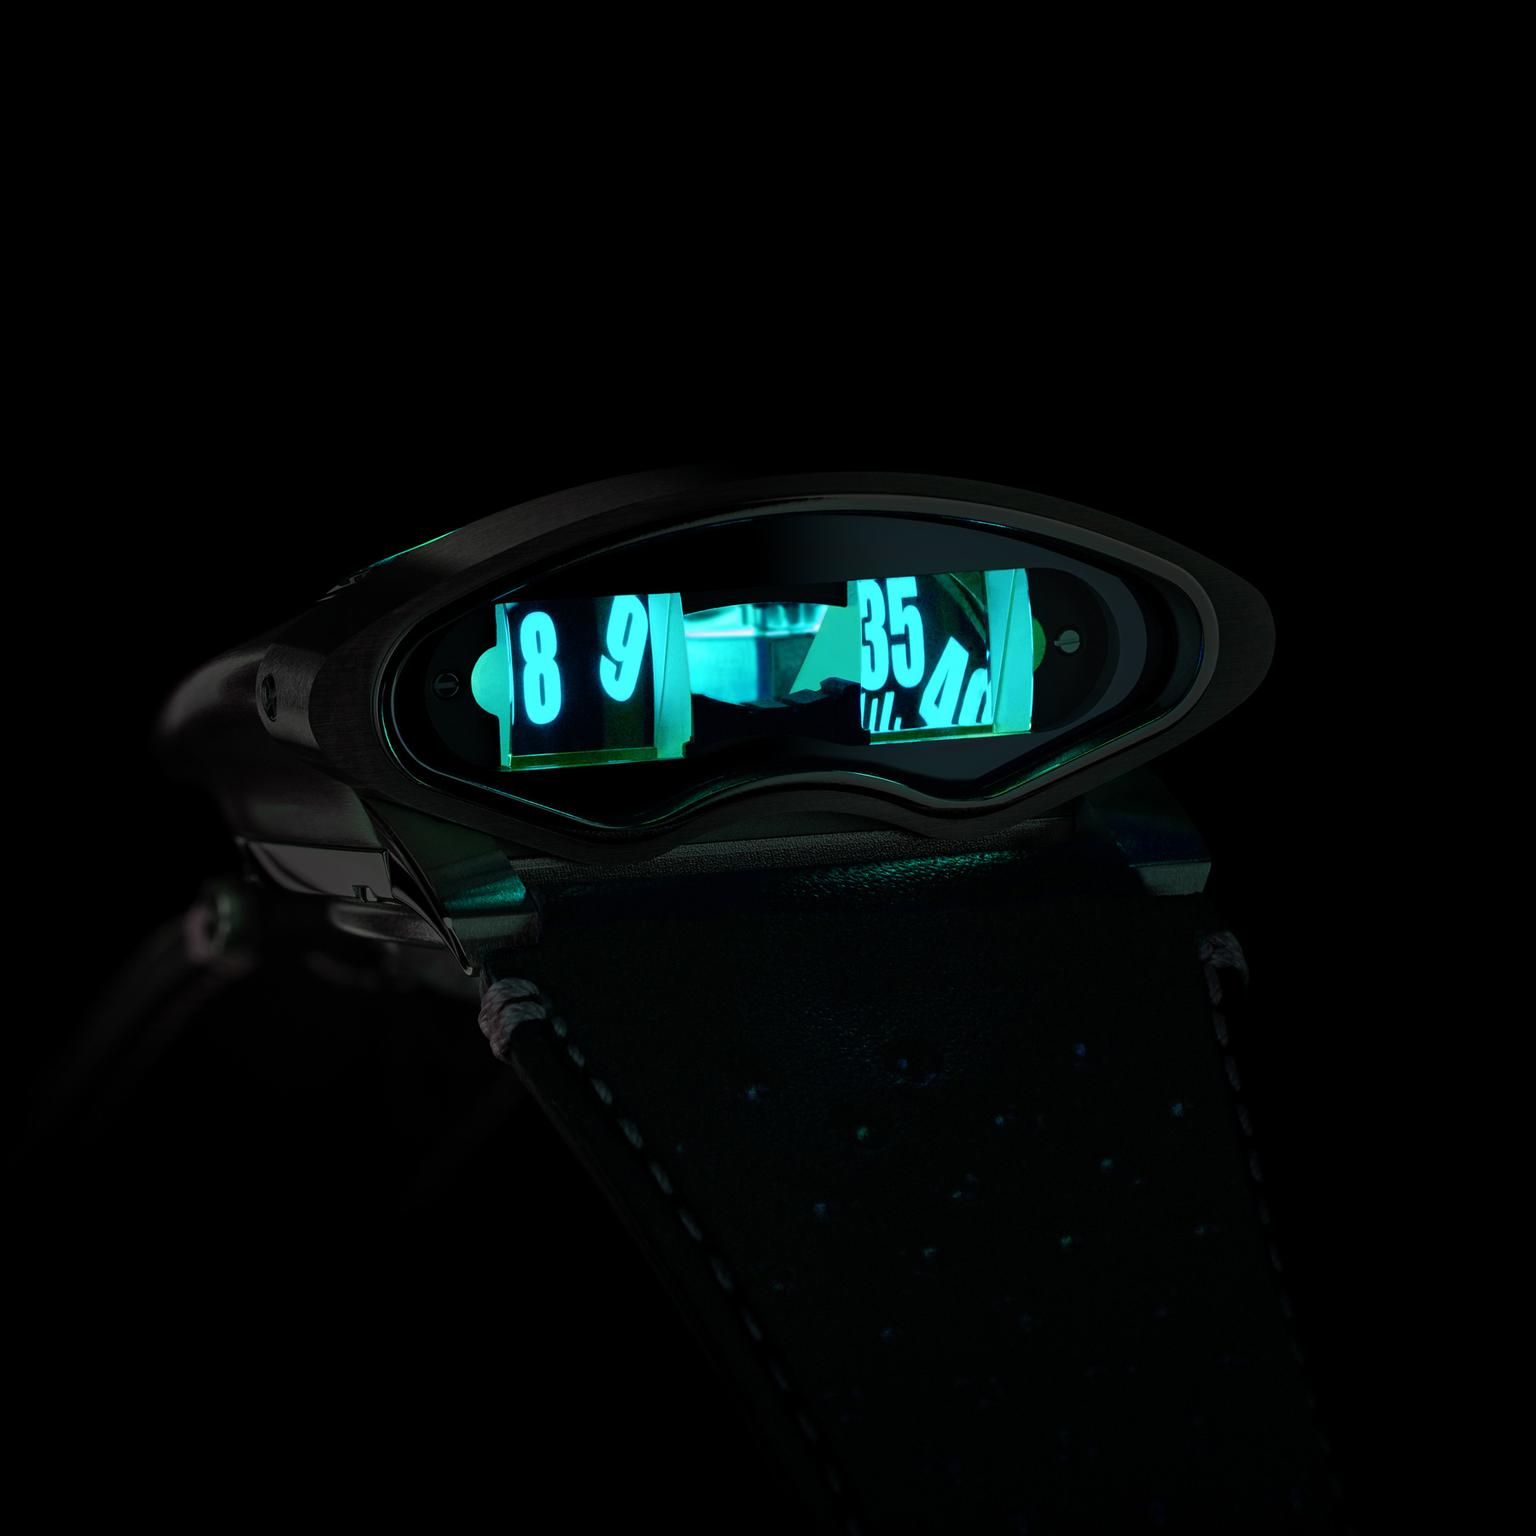 MB&F HMX Black Badger watch - side view